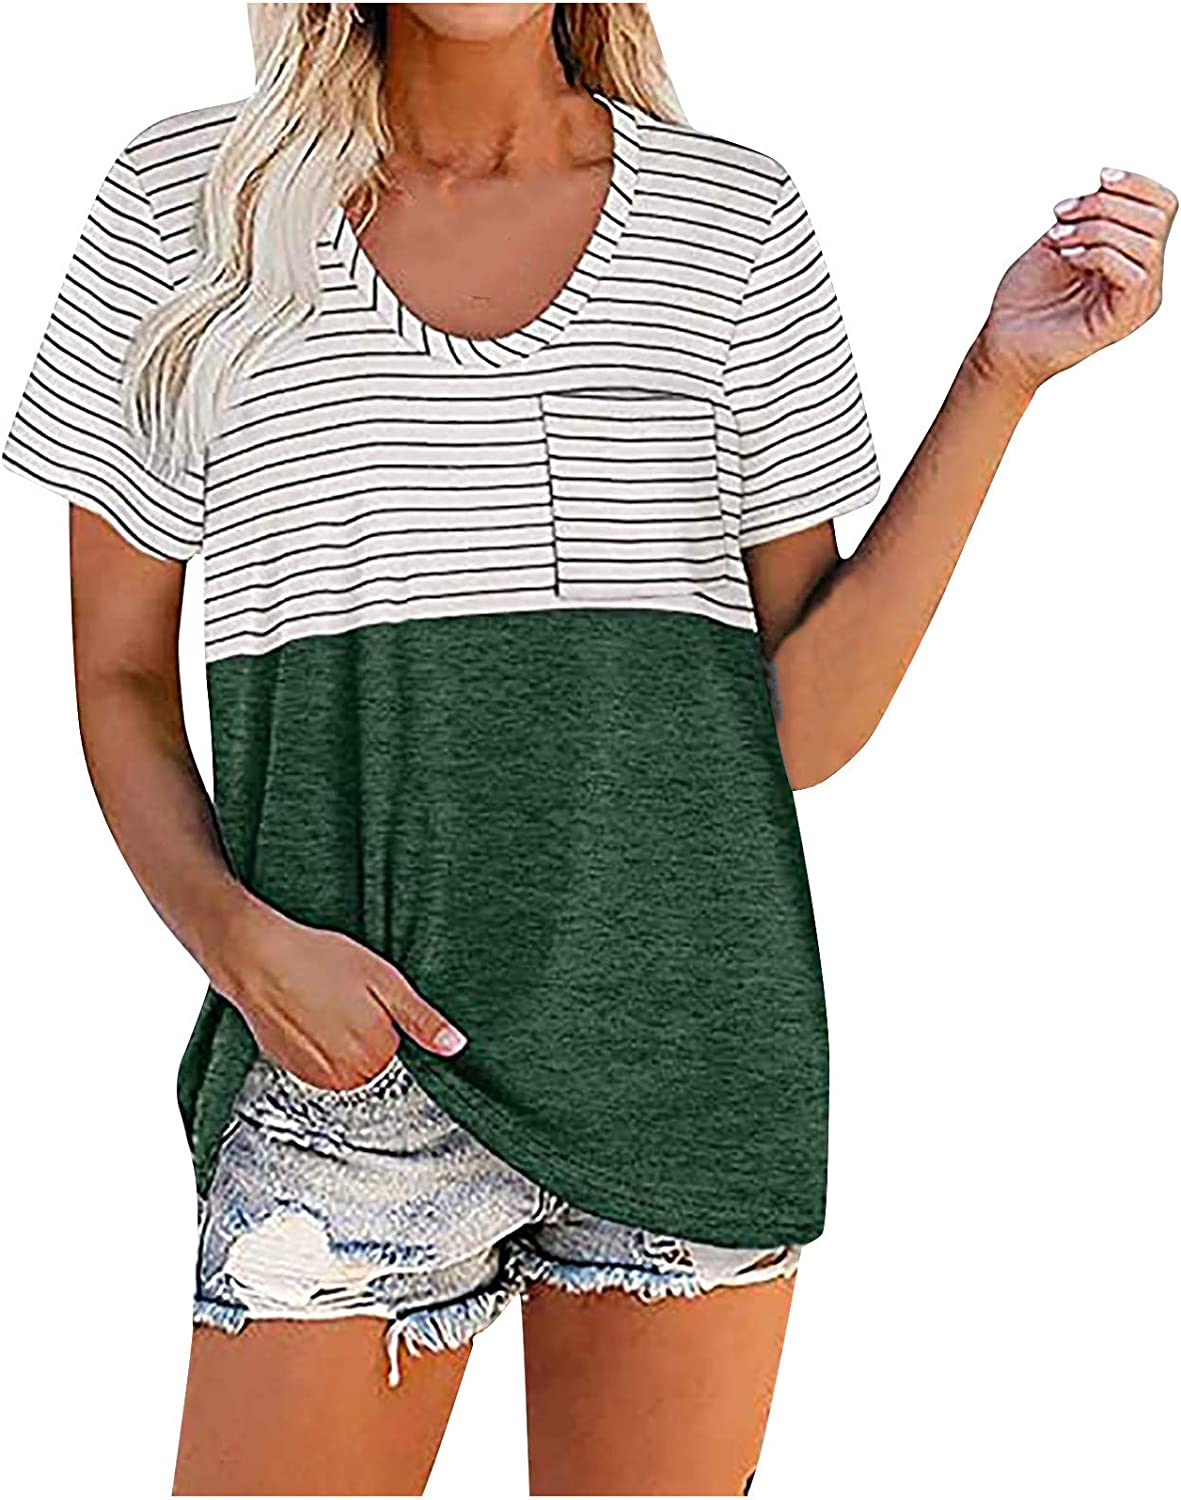 Fankle Women-Plus-Size-Tops Summer T Shirts Color Block Tee Striped Tunics with Pockets